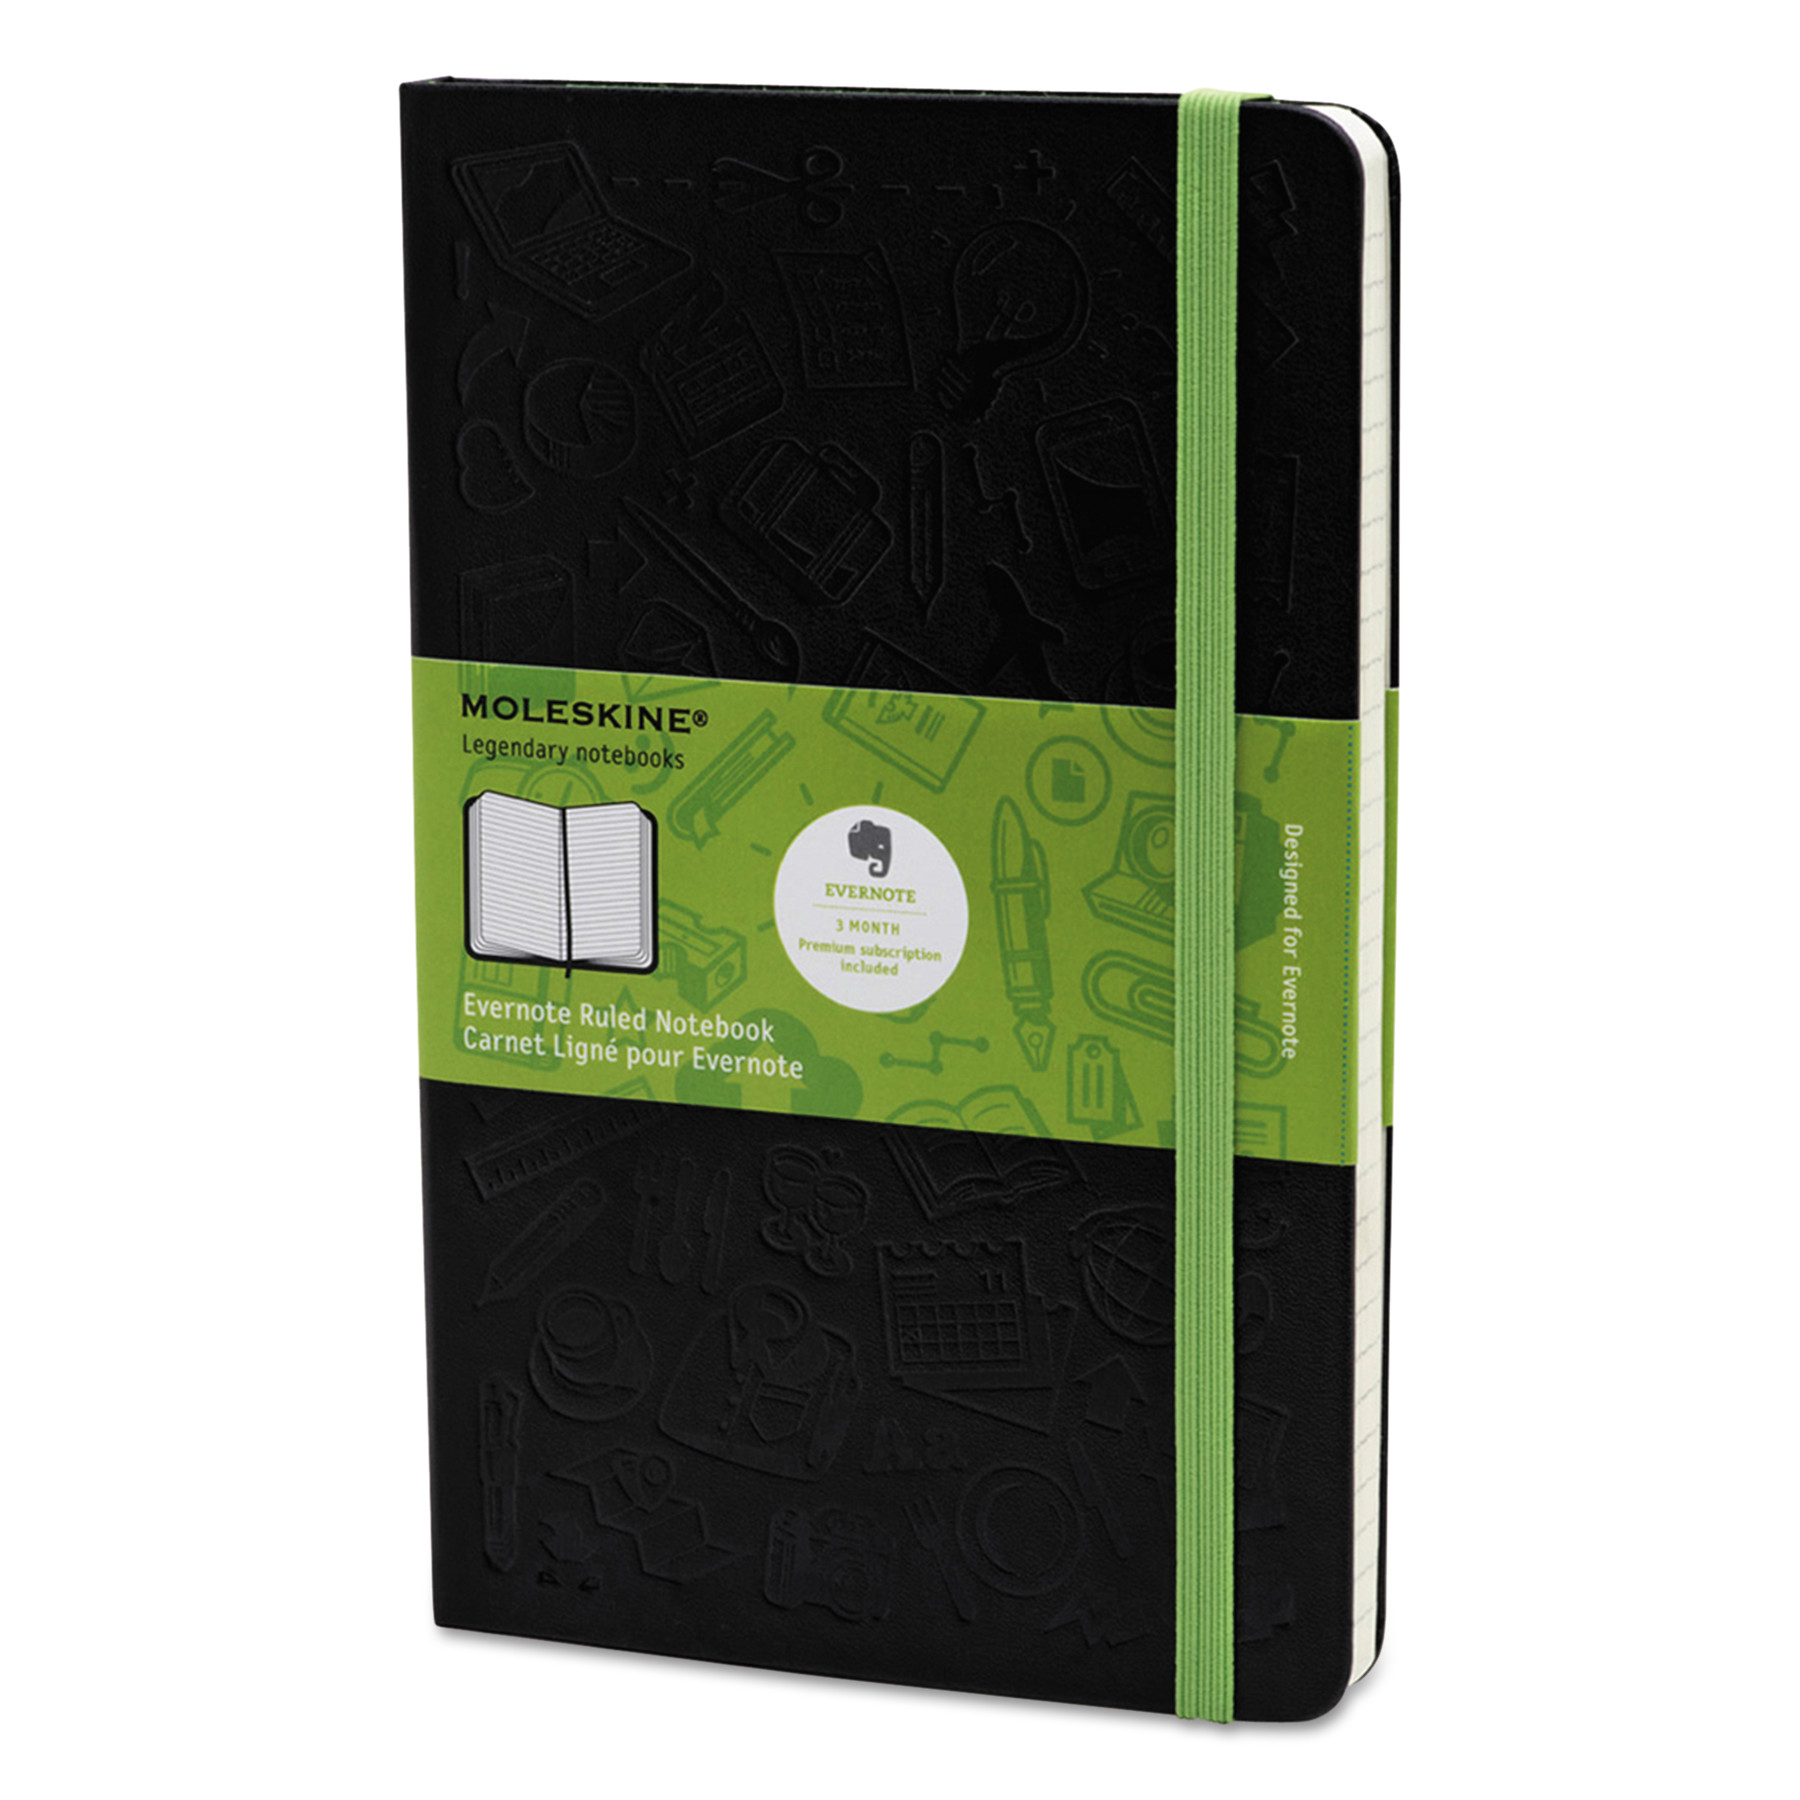 Moleskine Ruled Evernote Smart Notebook, 8 1/4 x 5, Black Cover, 240 Sheets